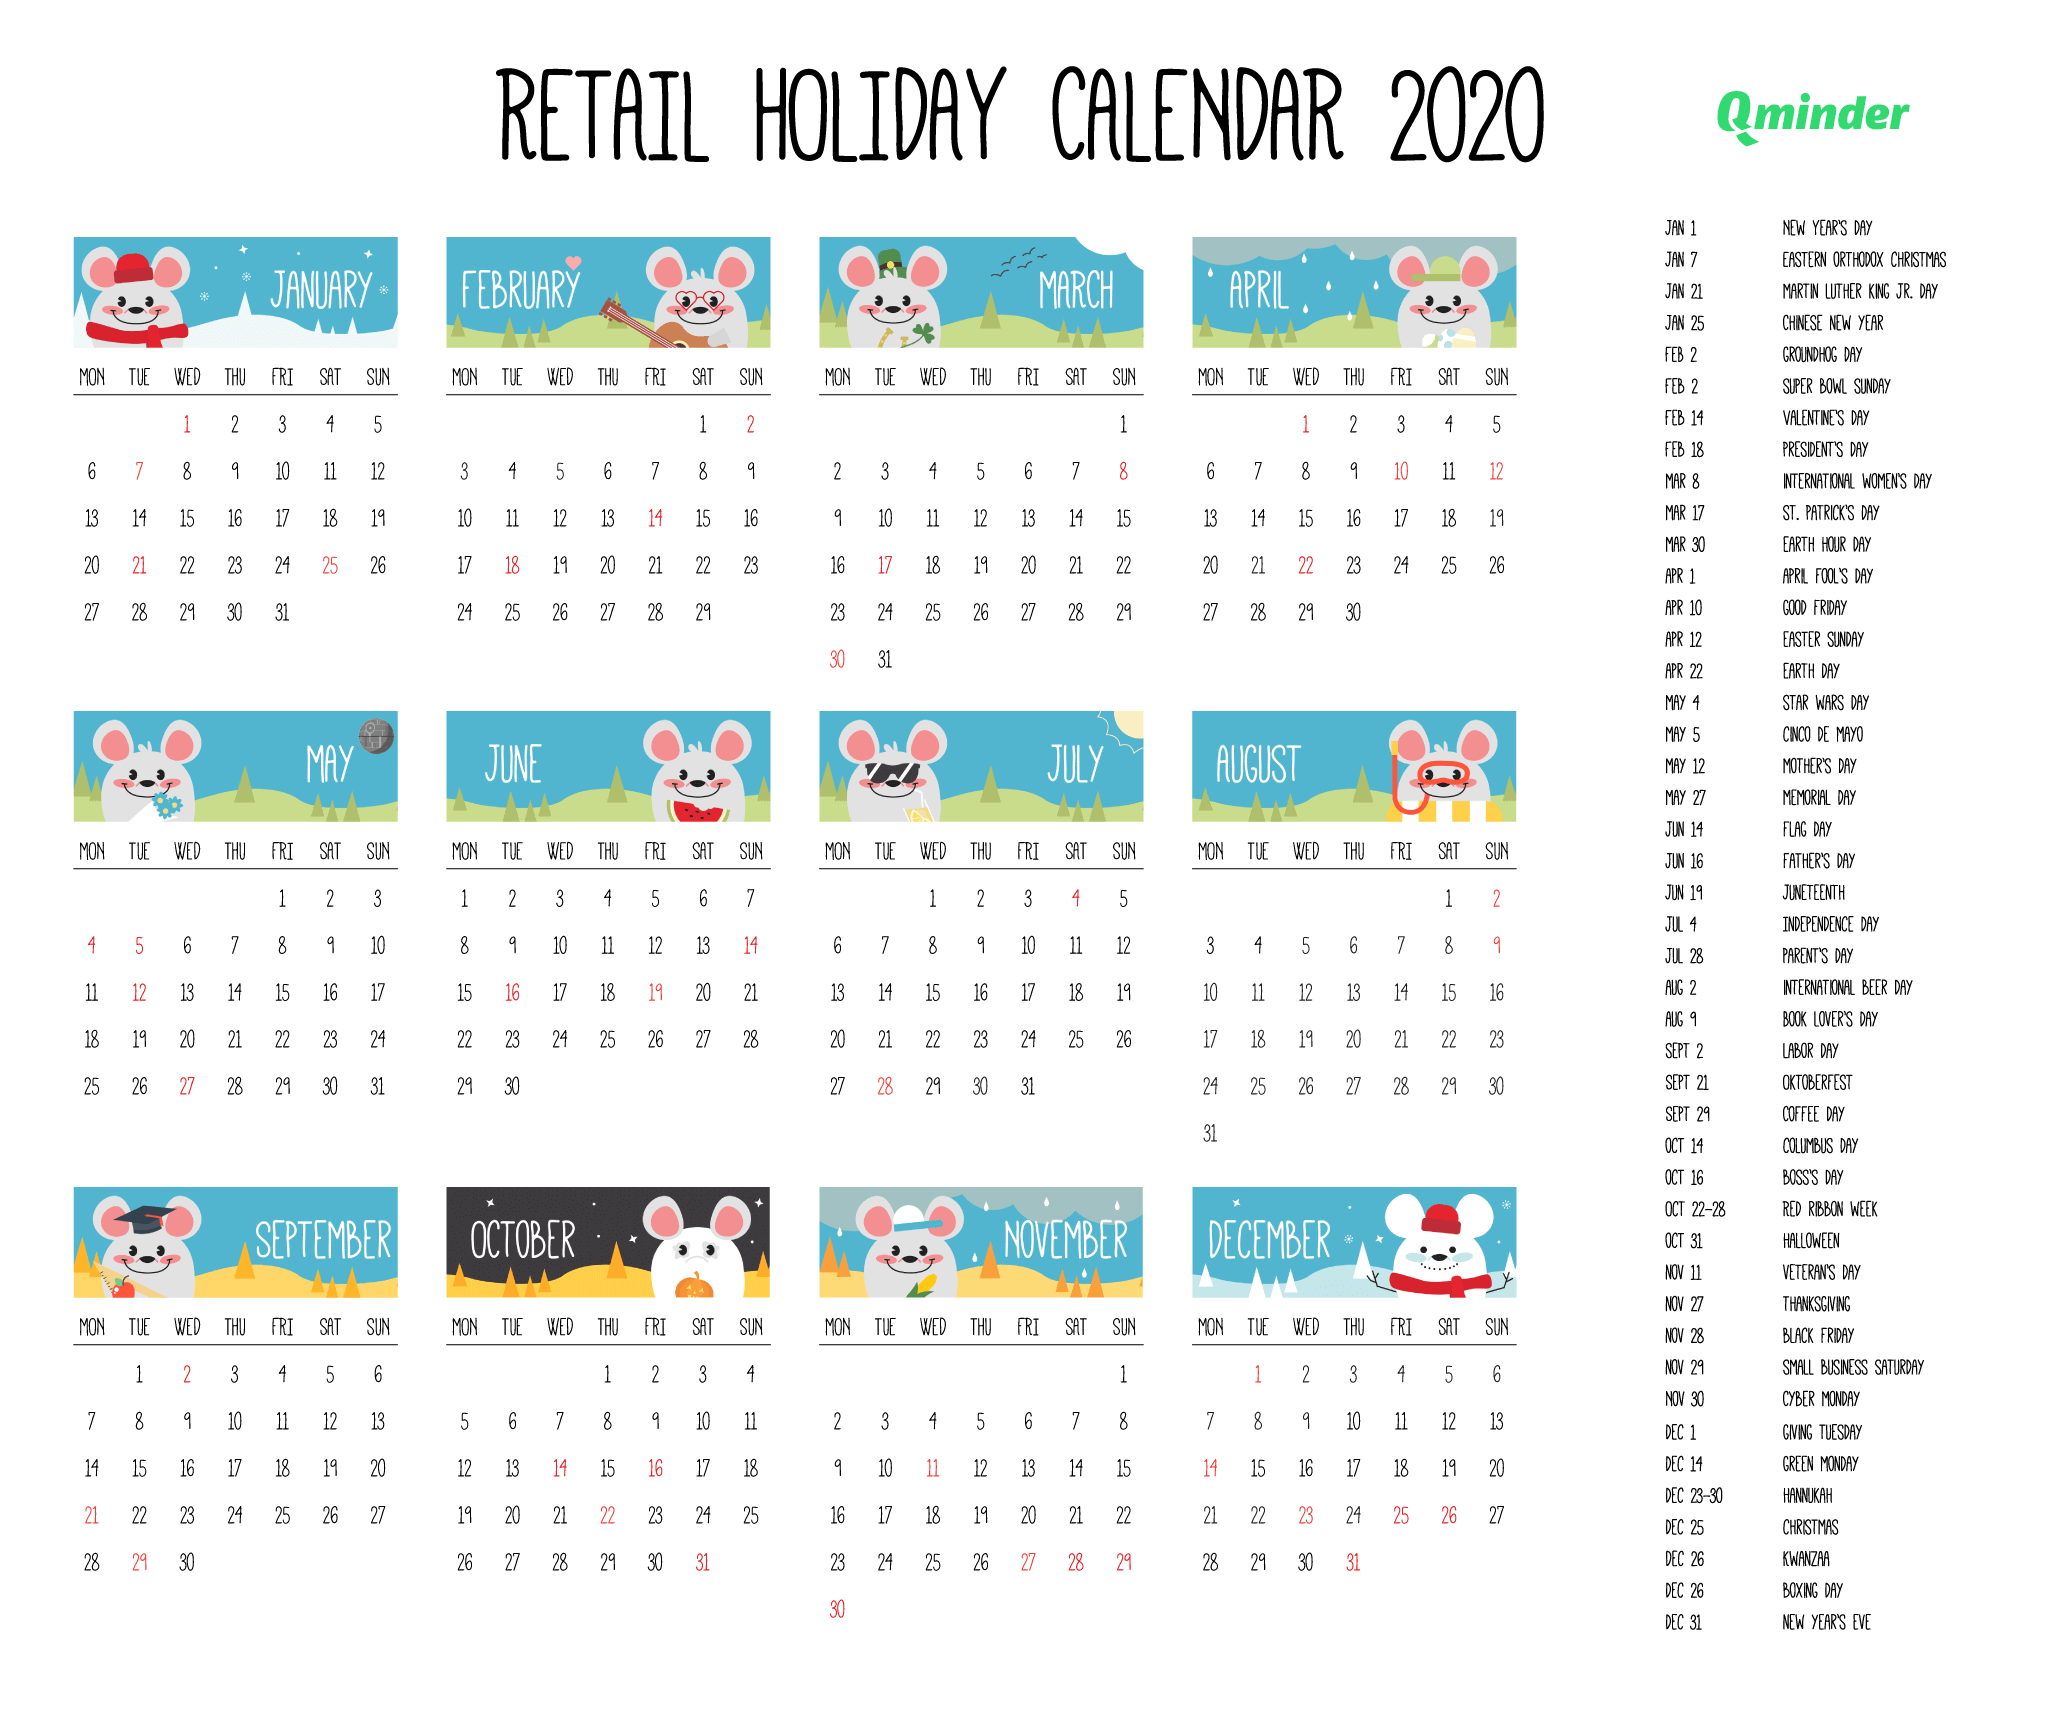 retail holiday calendar 2020